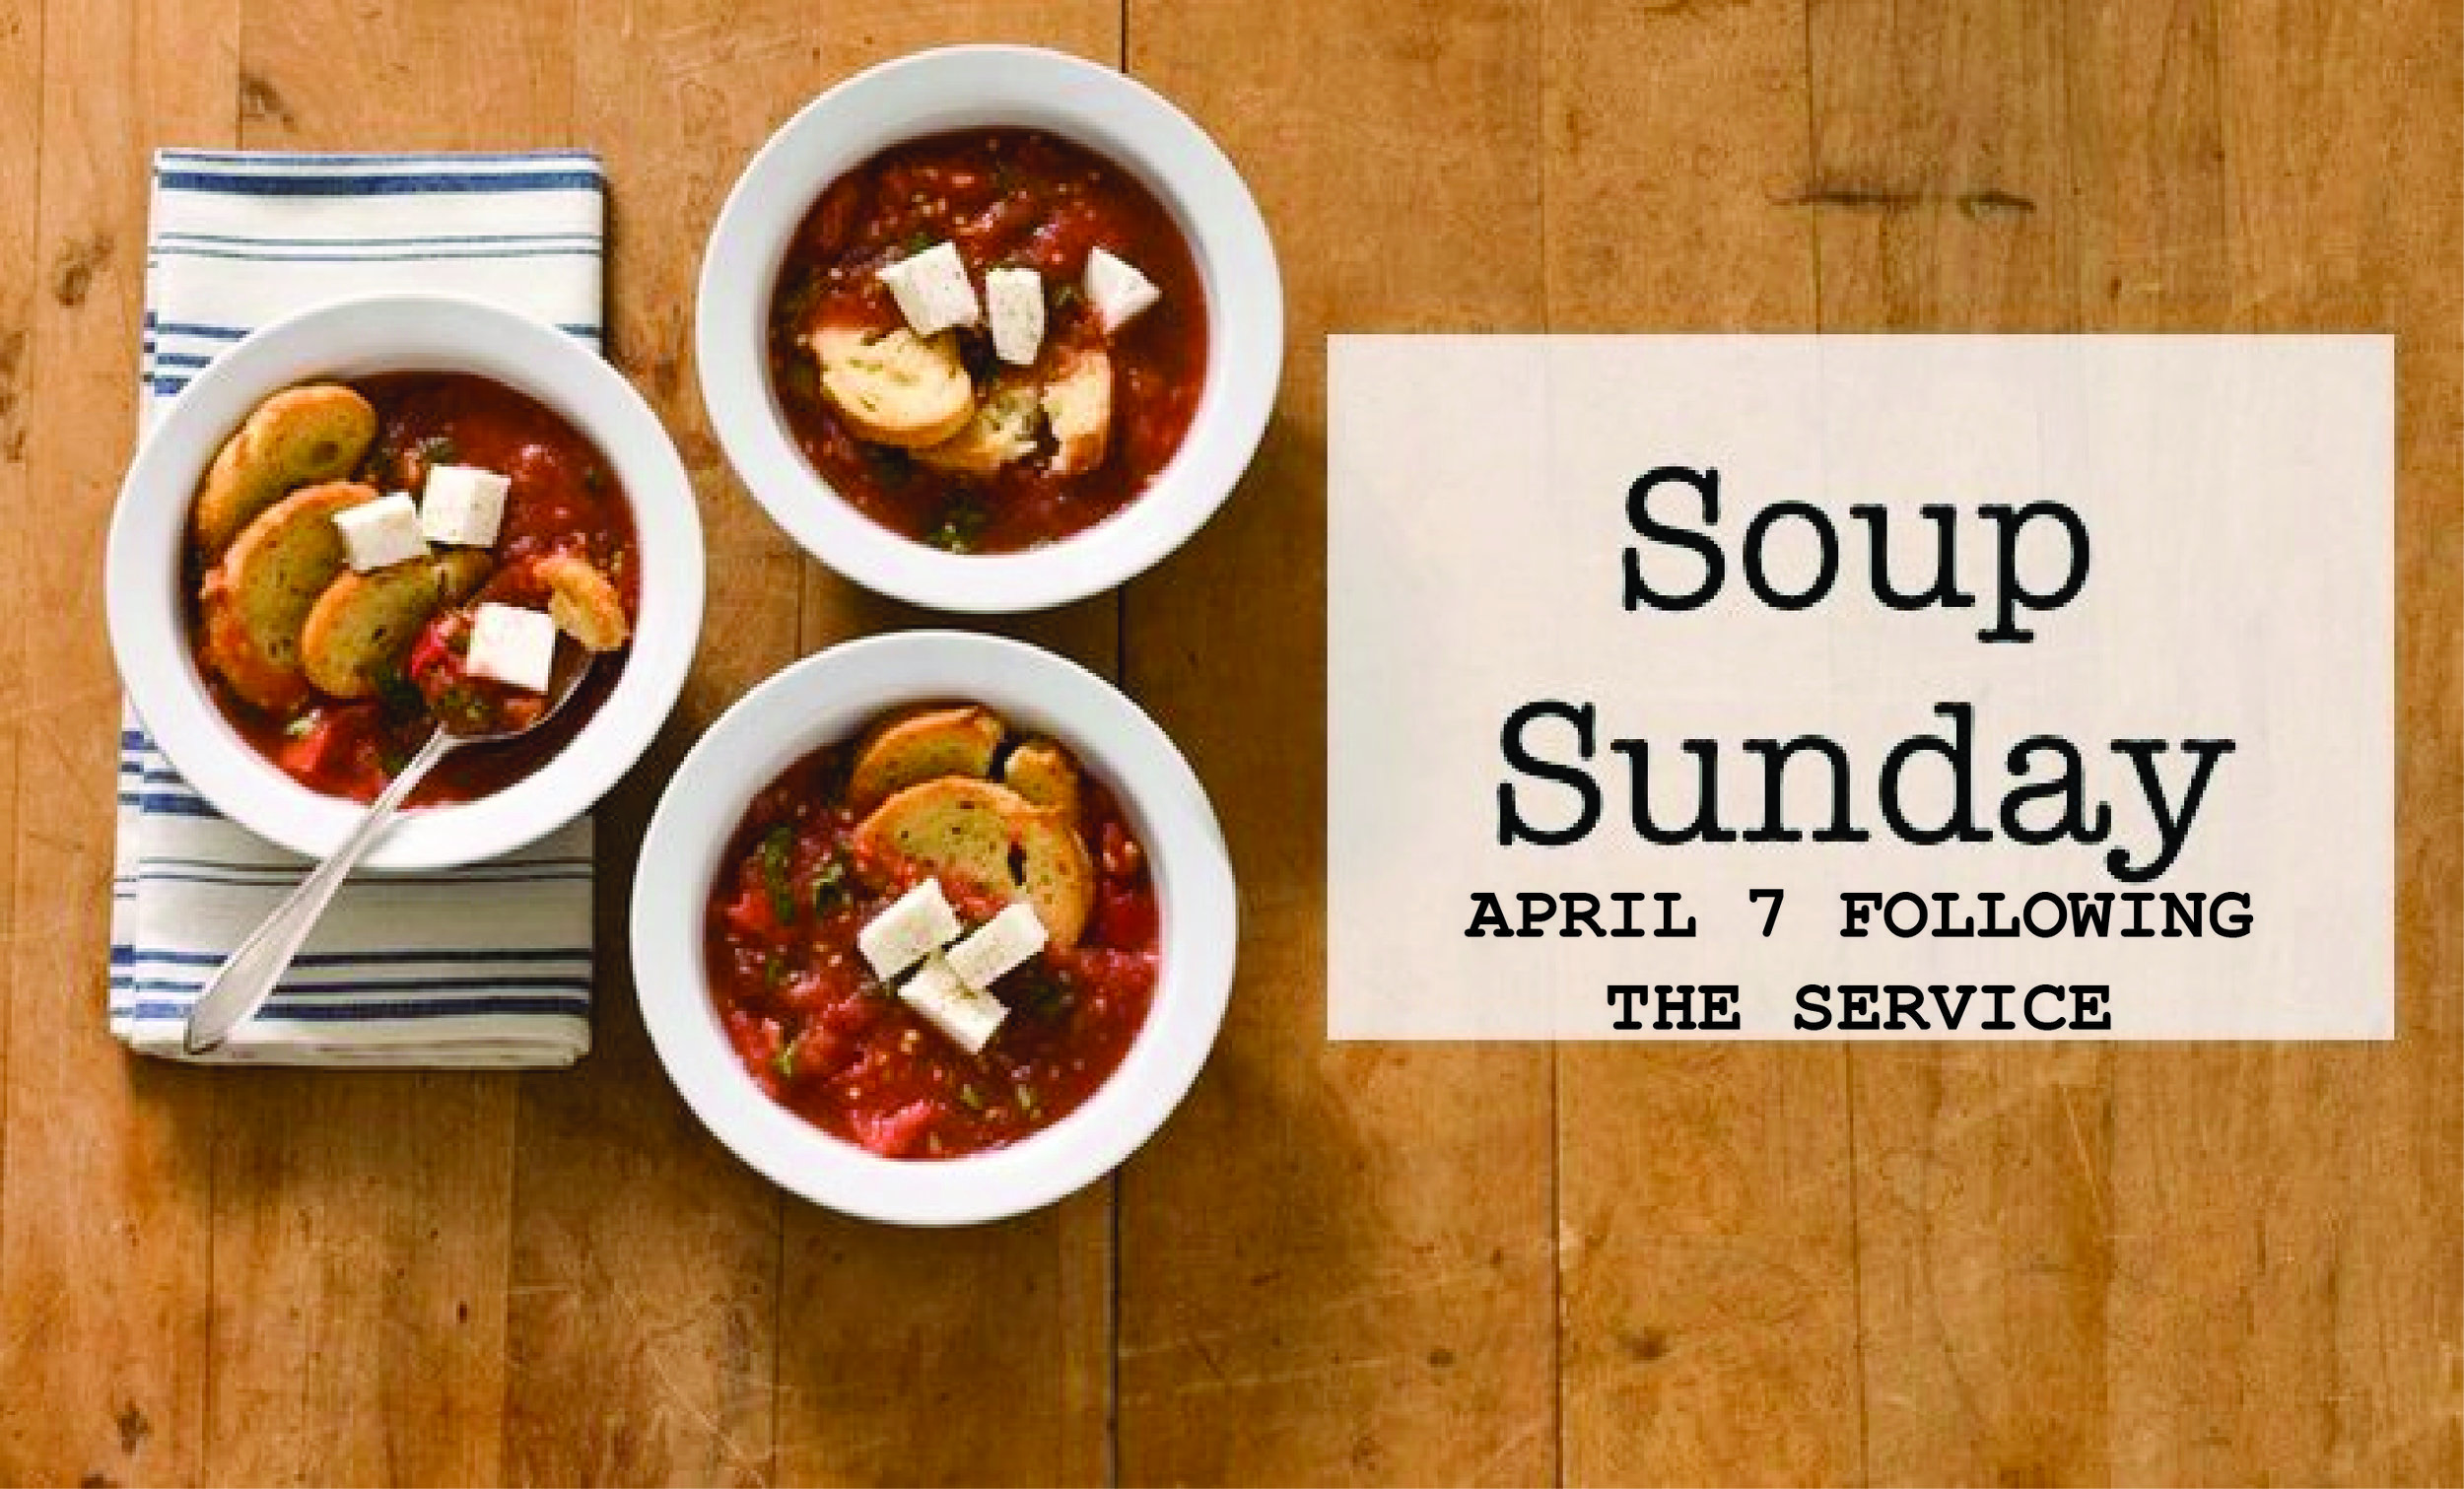 soupsunday-01.jpg